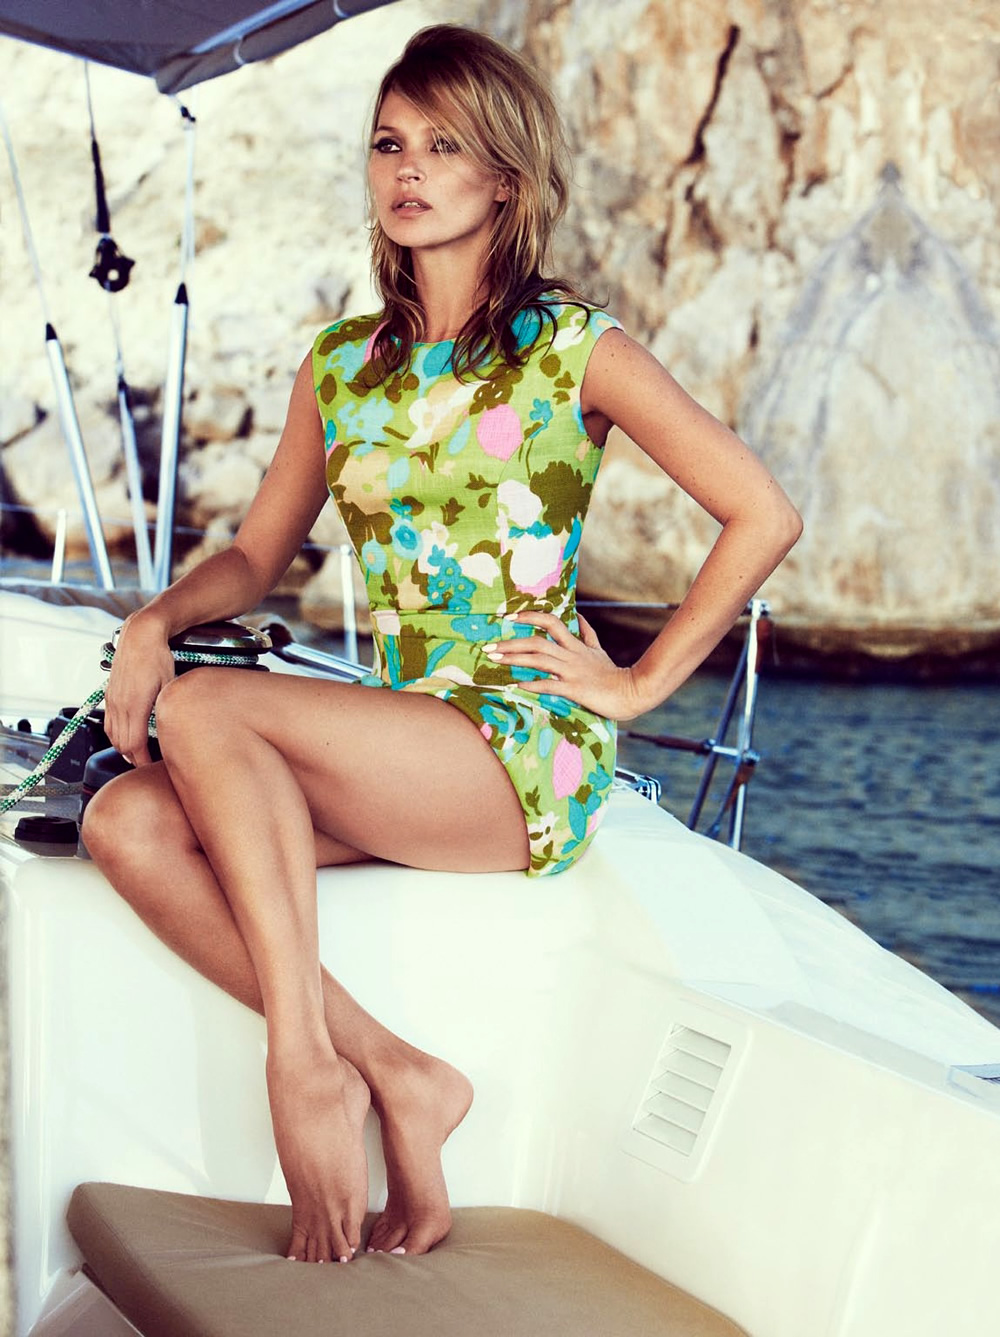 Kate-Moss-by-Patrick-Demarchelier-for-Vogue-UK-June-2013-2